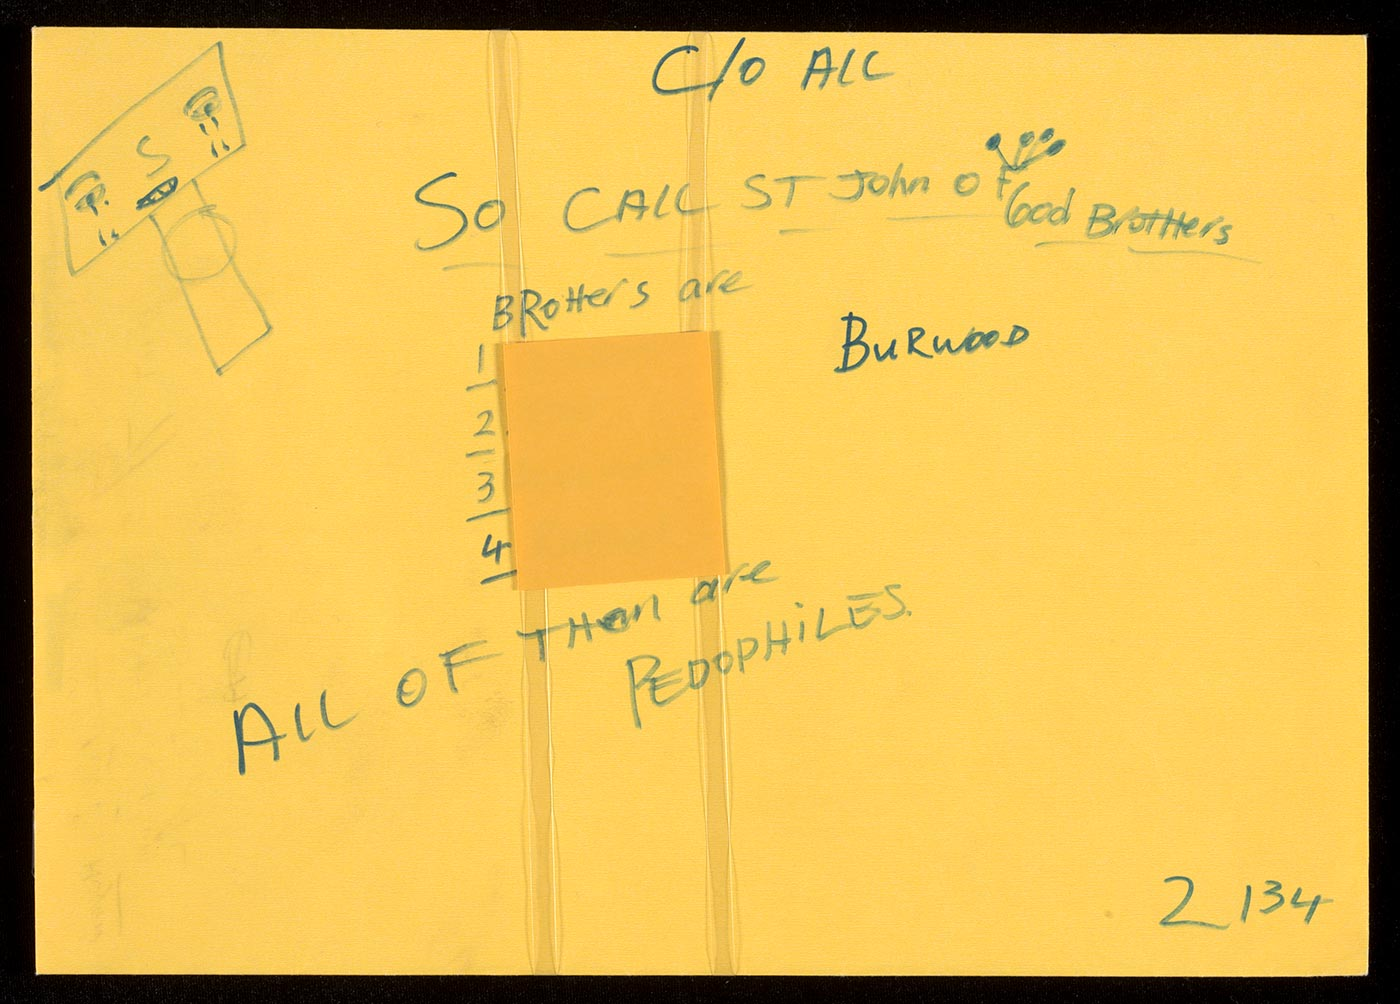 A yellow envelope with blue handwritten text that reads 'C/O ALL / SO CALL ST John of God BrotHers / BRoHers are / 1 BENEDICT / 2 BEDE / 3 B[E]RKmakS / 4 RAFael / ALL OF THem are PEDOPHILES.' 'BURWOOD' is also written at the right side of the list of names. In the top left corner there is a rectangular shaped face crying tears. - click to view larger image